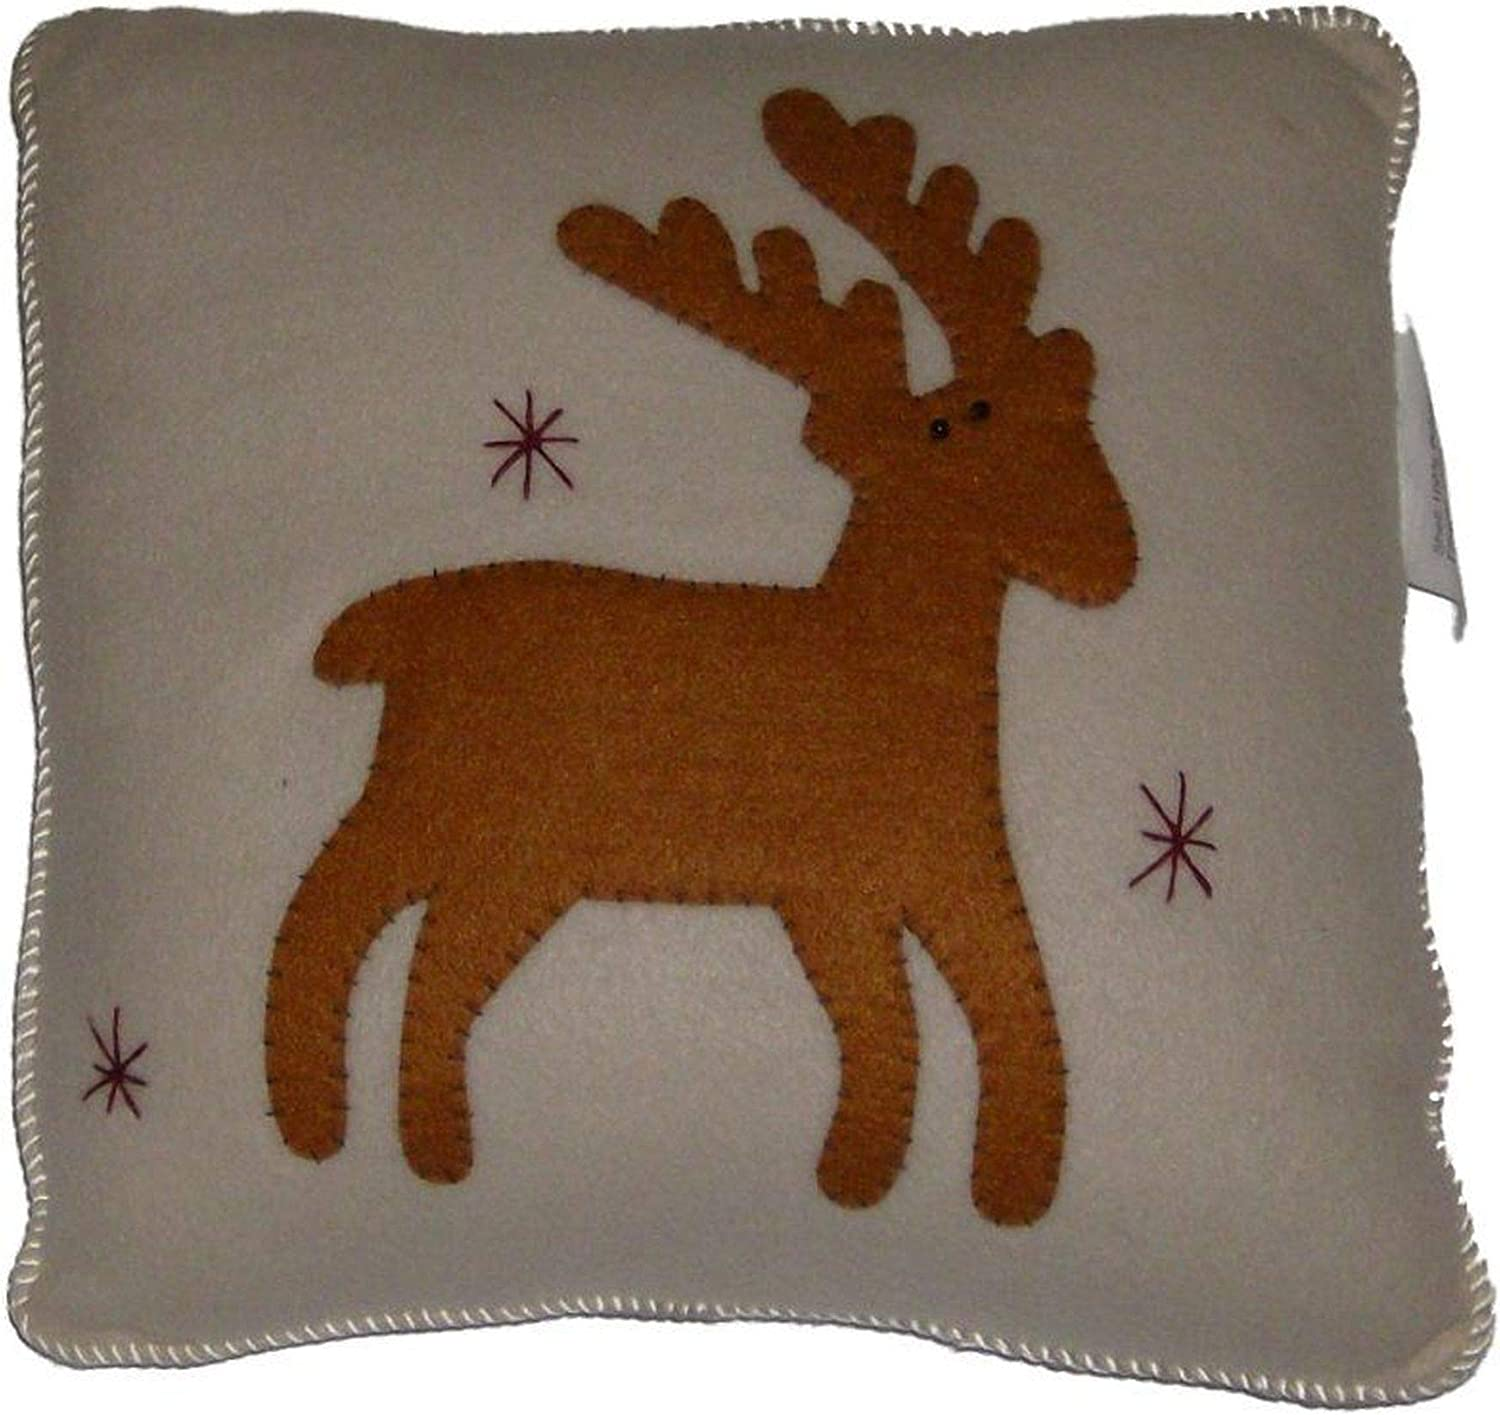 NorthCrest Home Applique Reindeer Throw Pillow Holiday Toss Accent Cushion